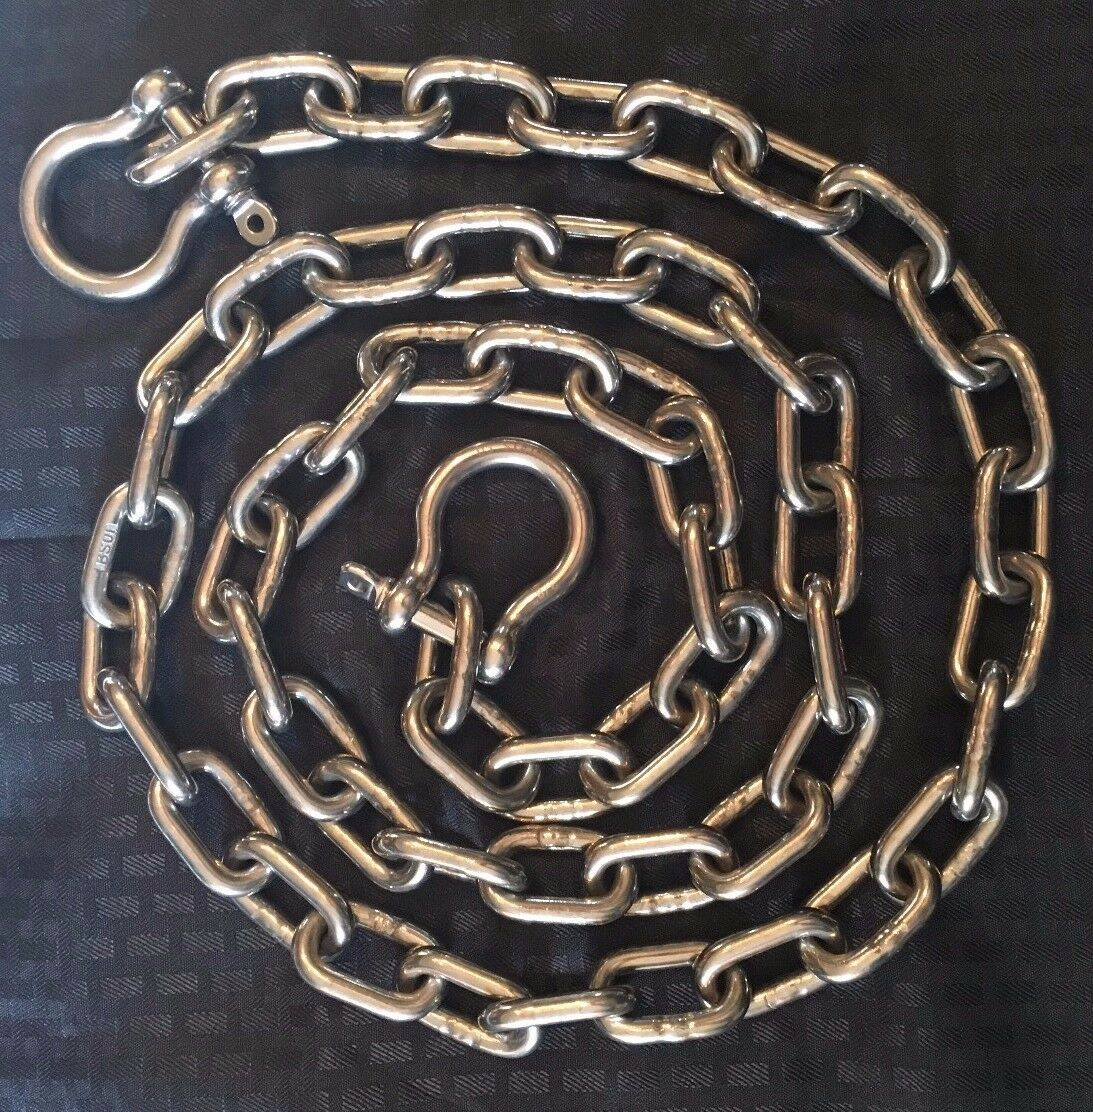 "Stainless Steel 316 Anchor Chain 5/16"" (8mm) by 8' long with quality shackles"